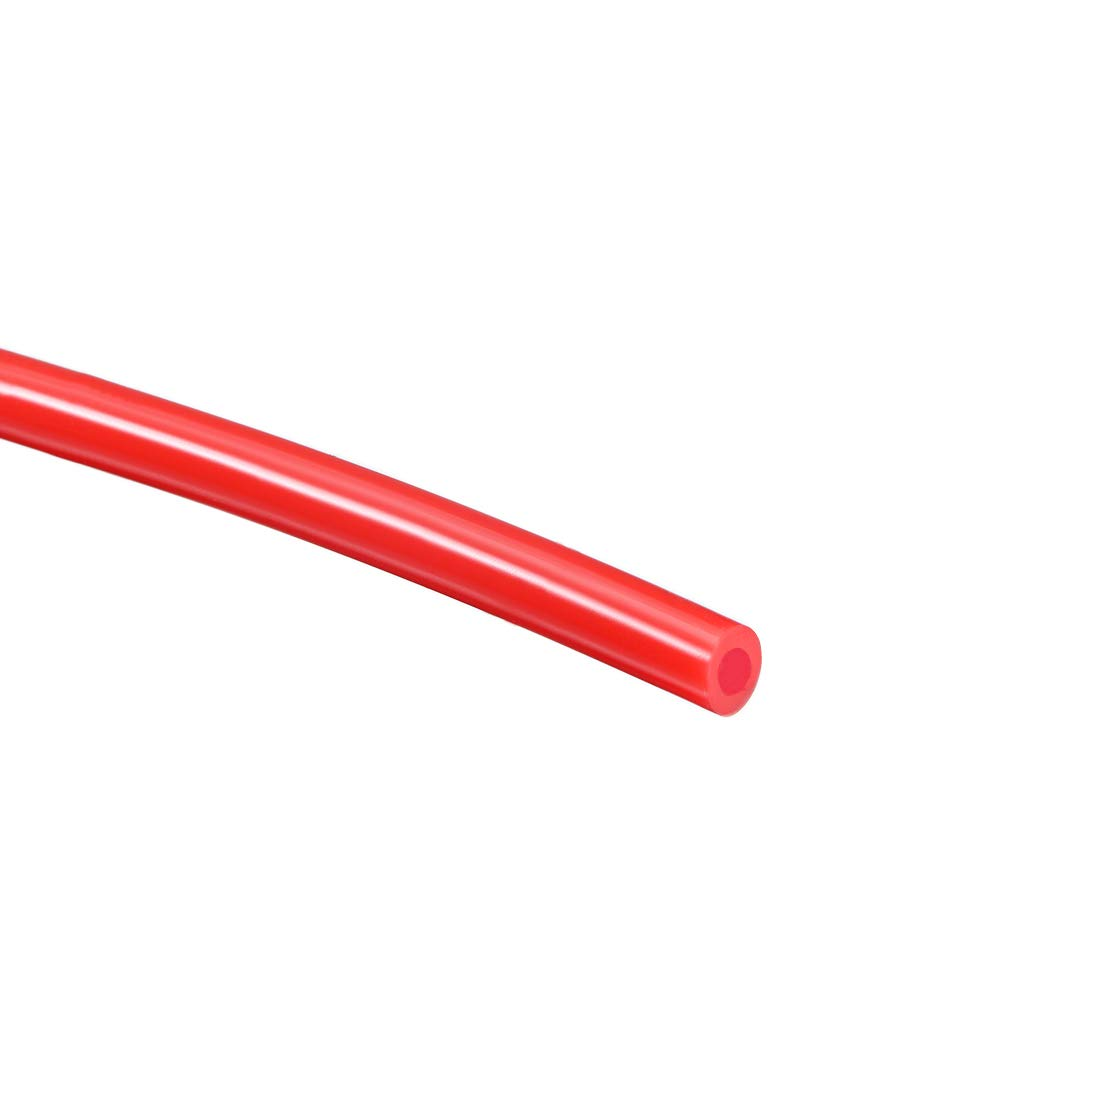 uxcell Silicone Tubing 1 8